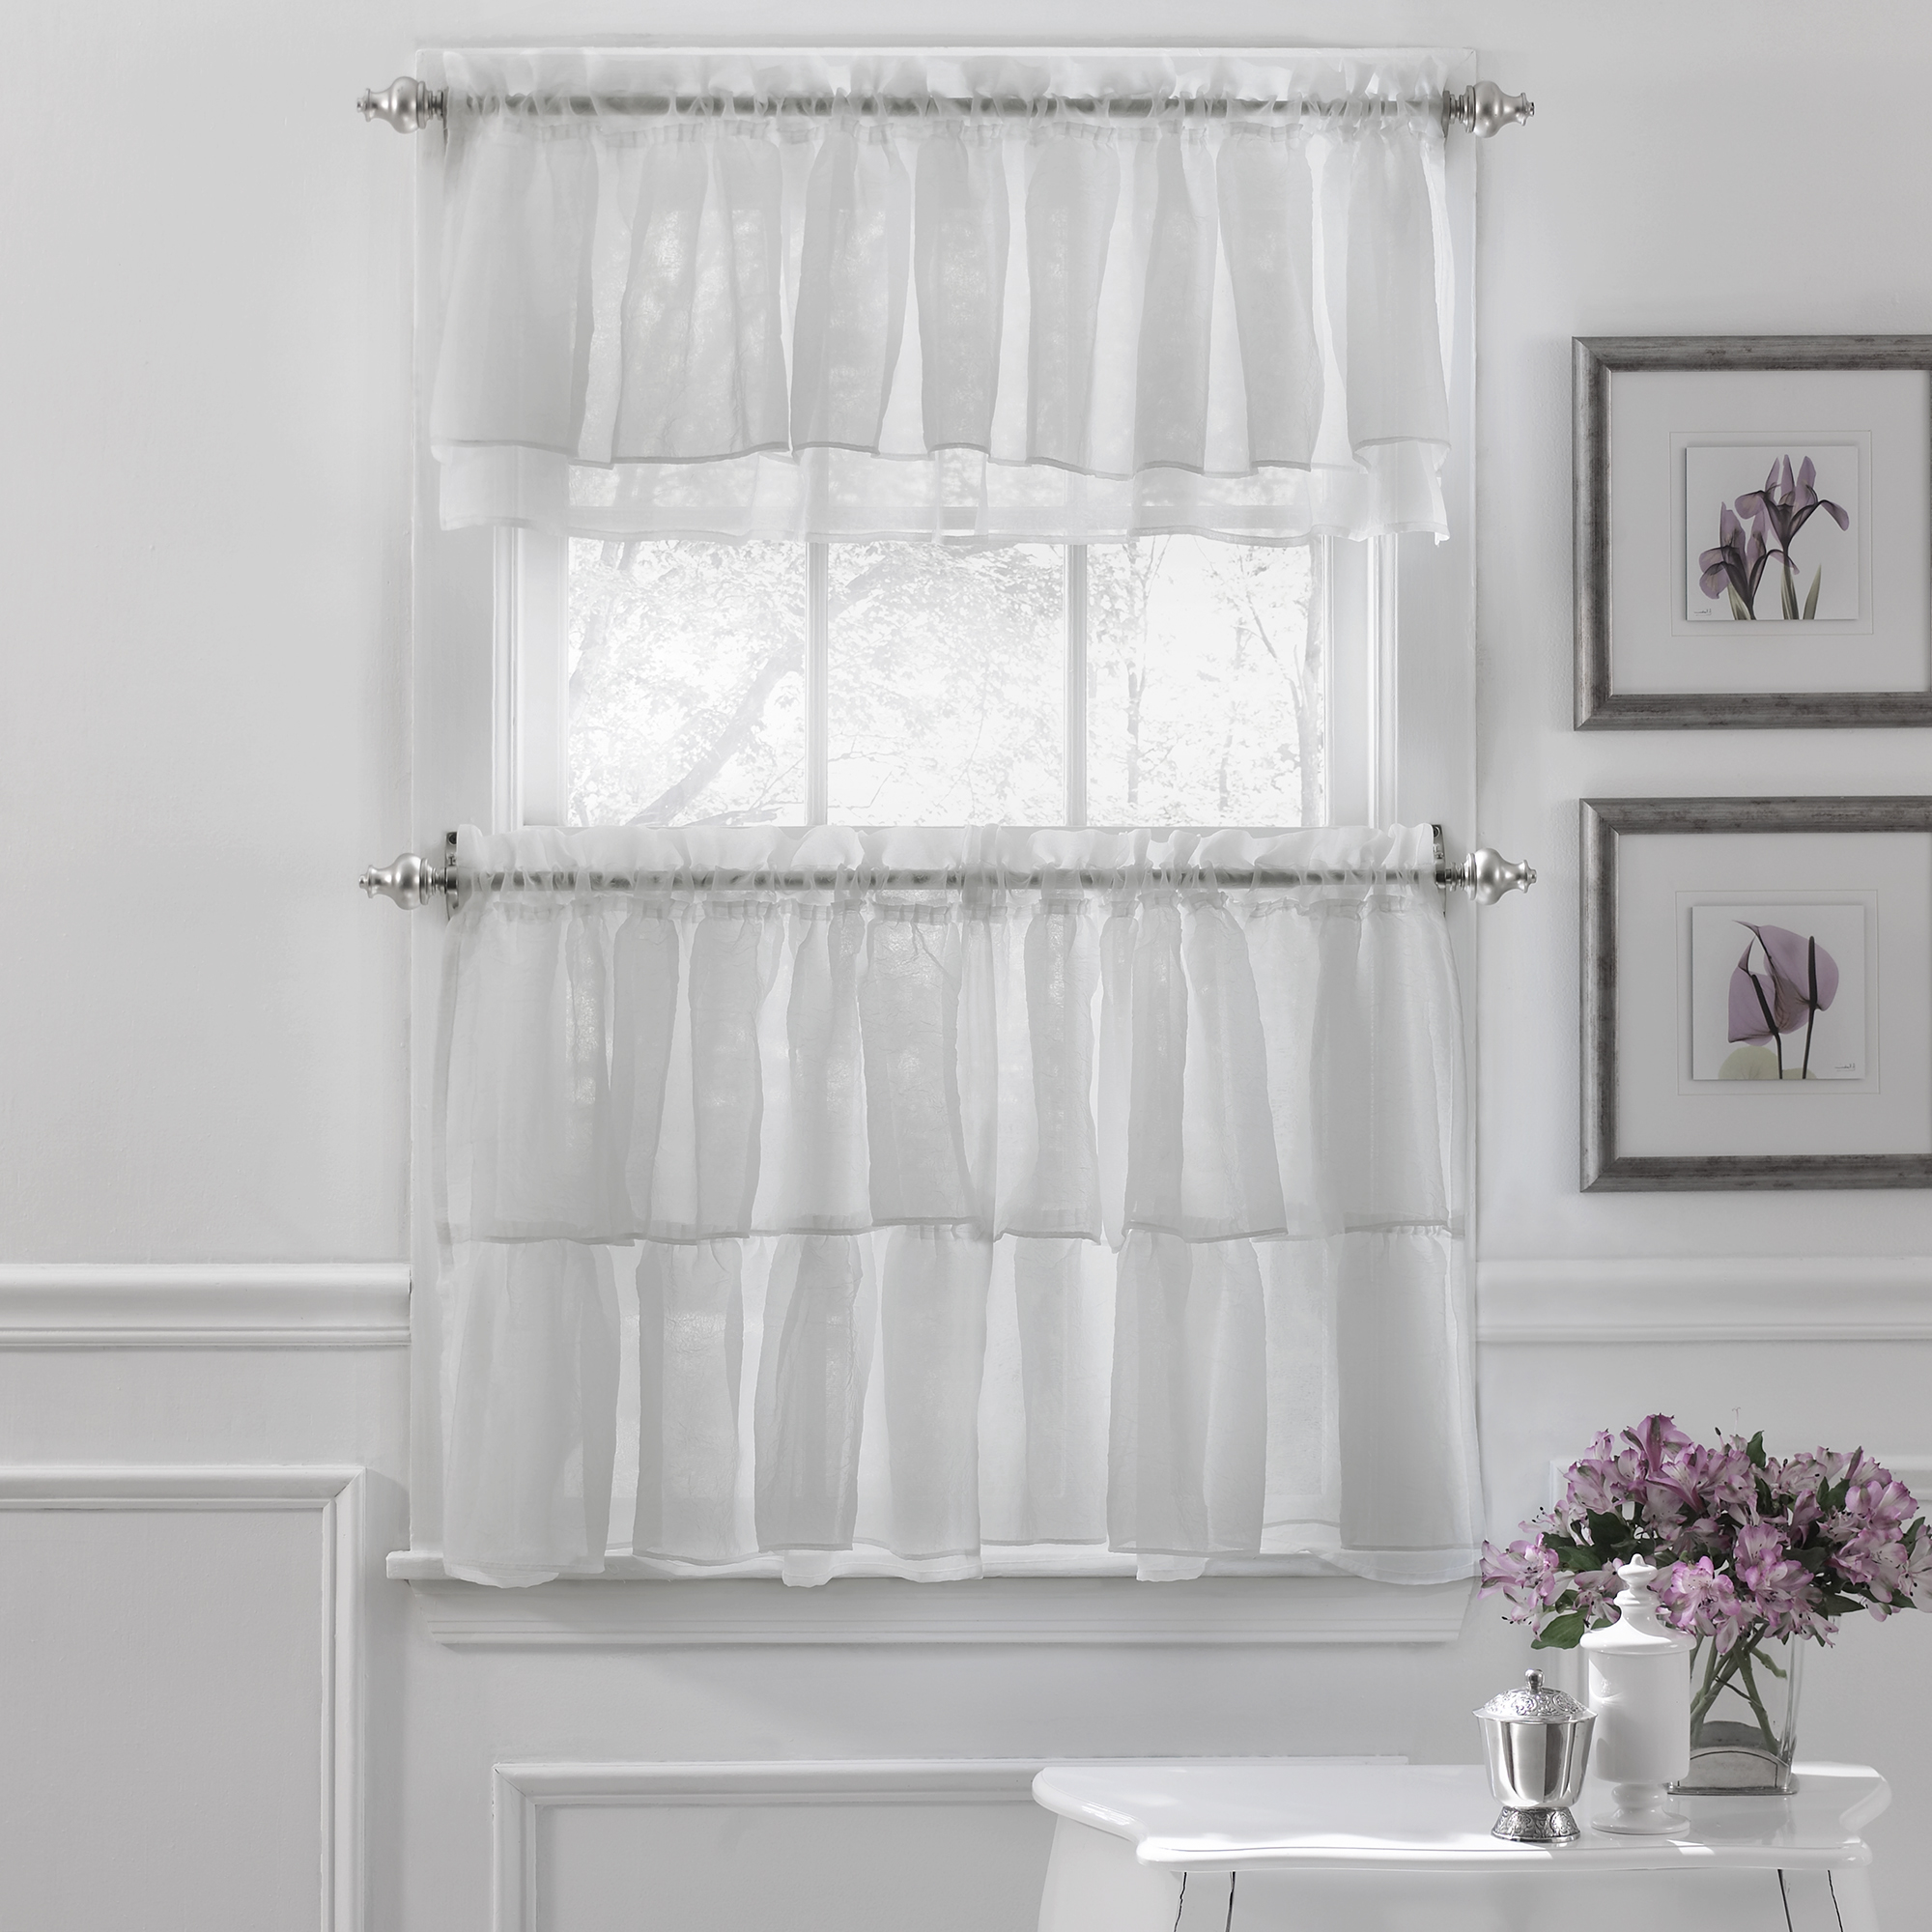 Classic Black And White Curtain Tiers Within Trendy Details About Gypsy Crushed Voile Ruffle Kitchen Window Curtain Tiers Or Valance White (View 11 of 20)